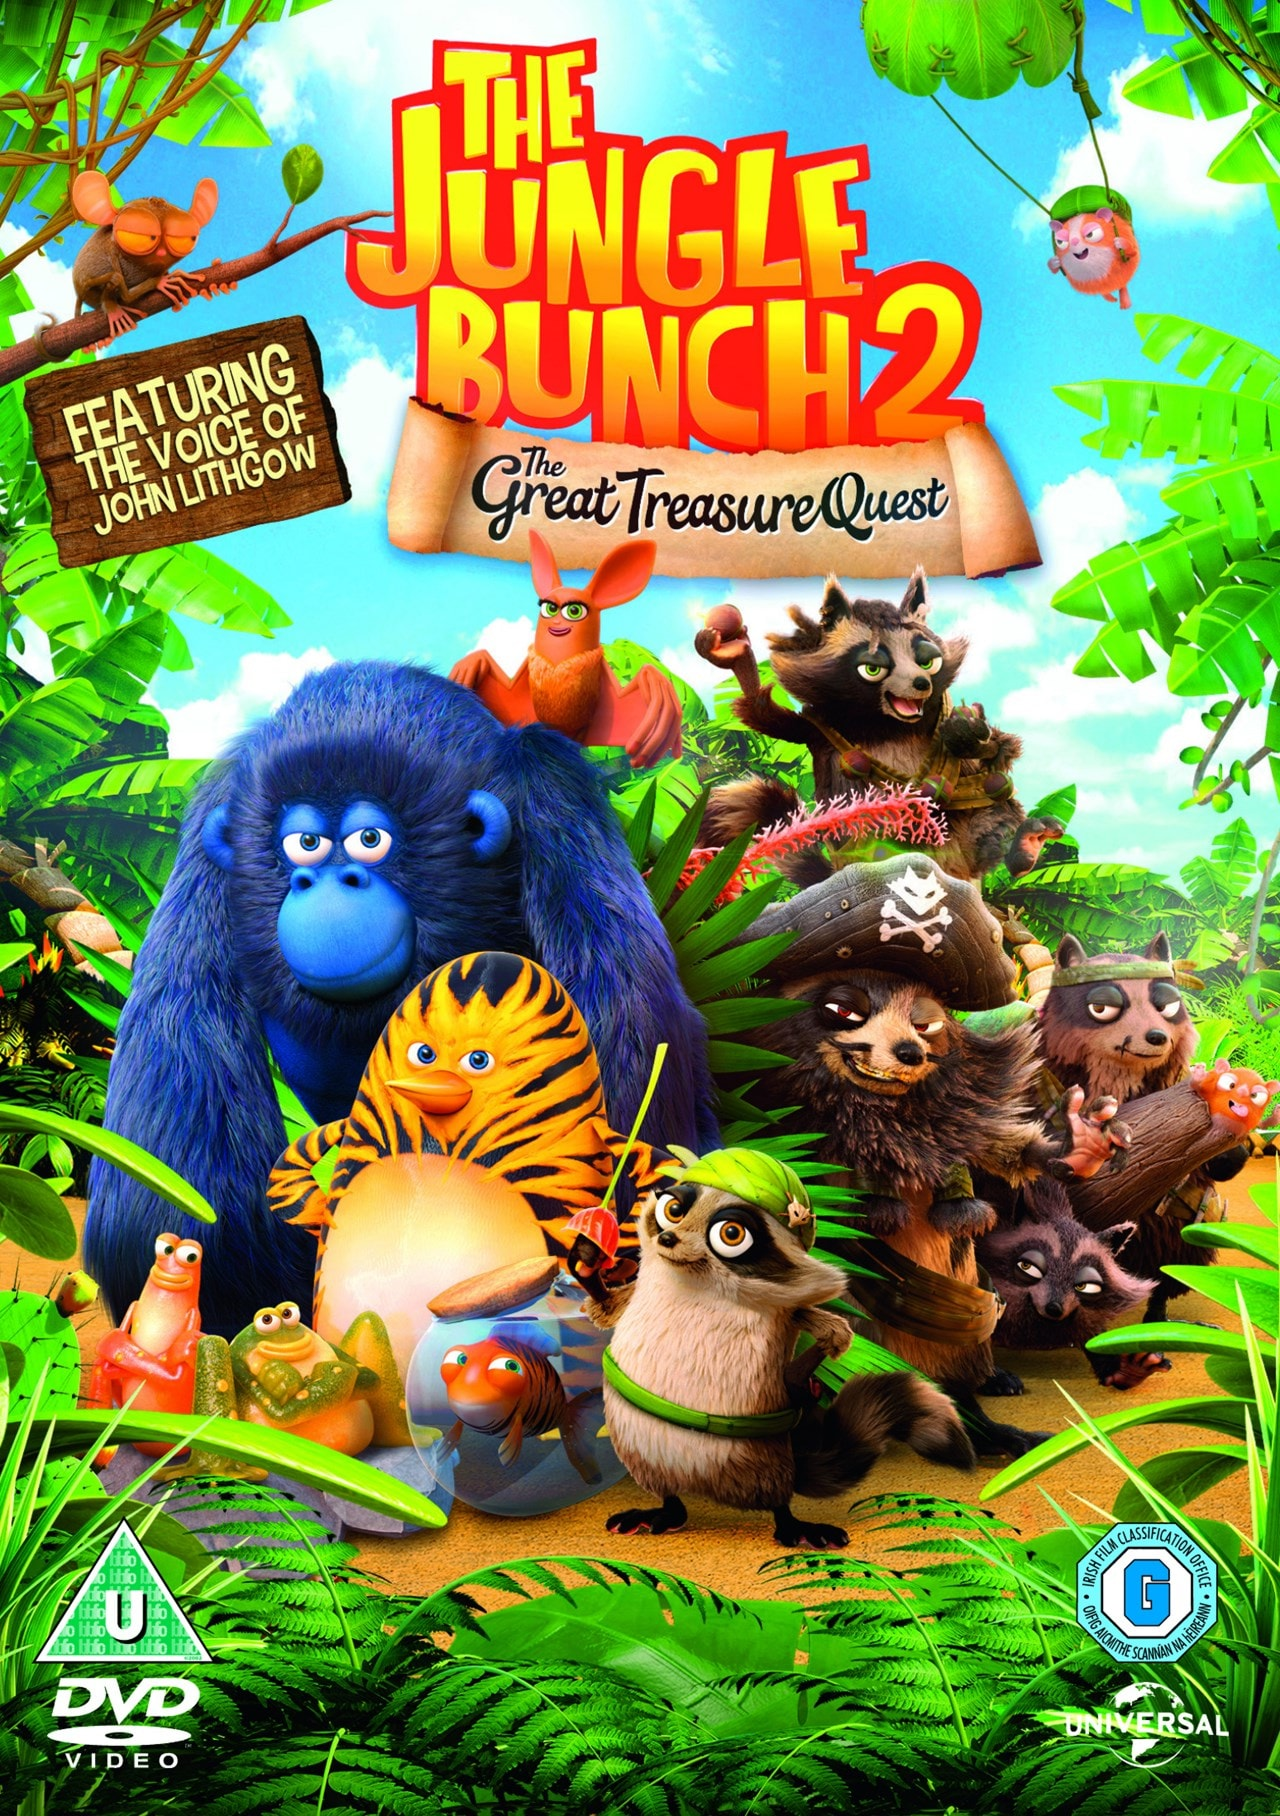 The Jungle Bunch 2: The Great Treasure Quest - 1